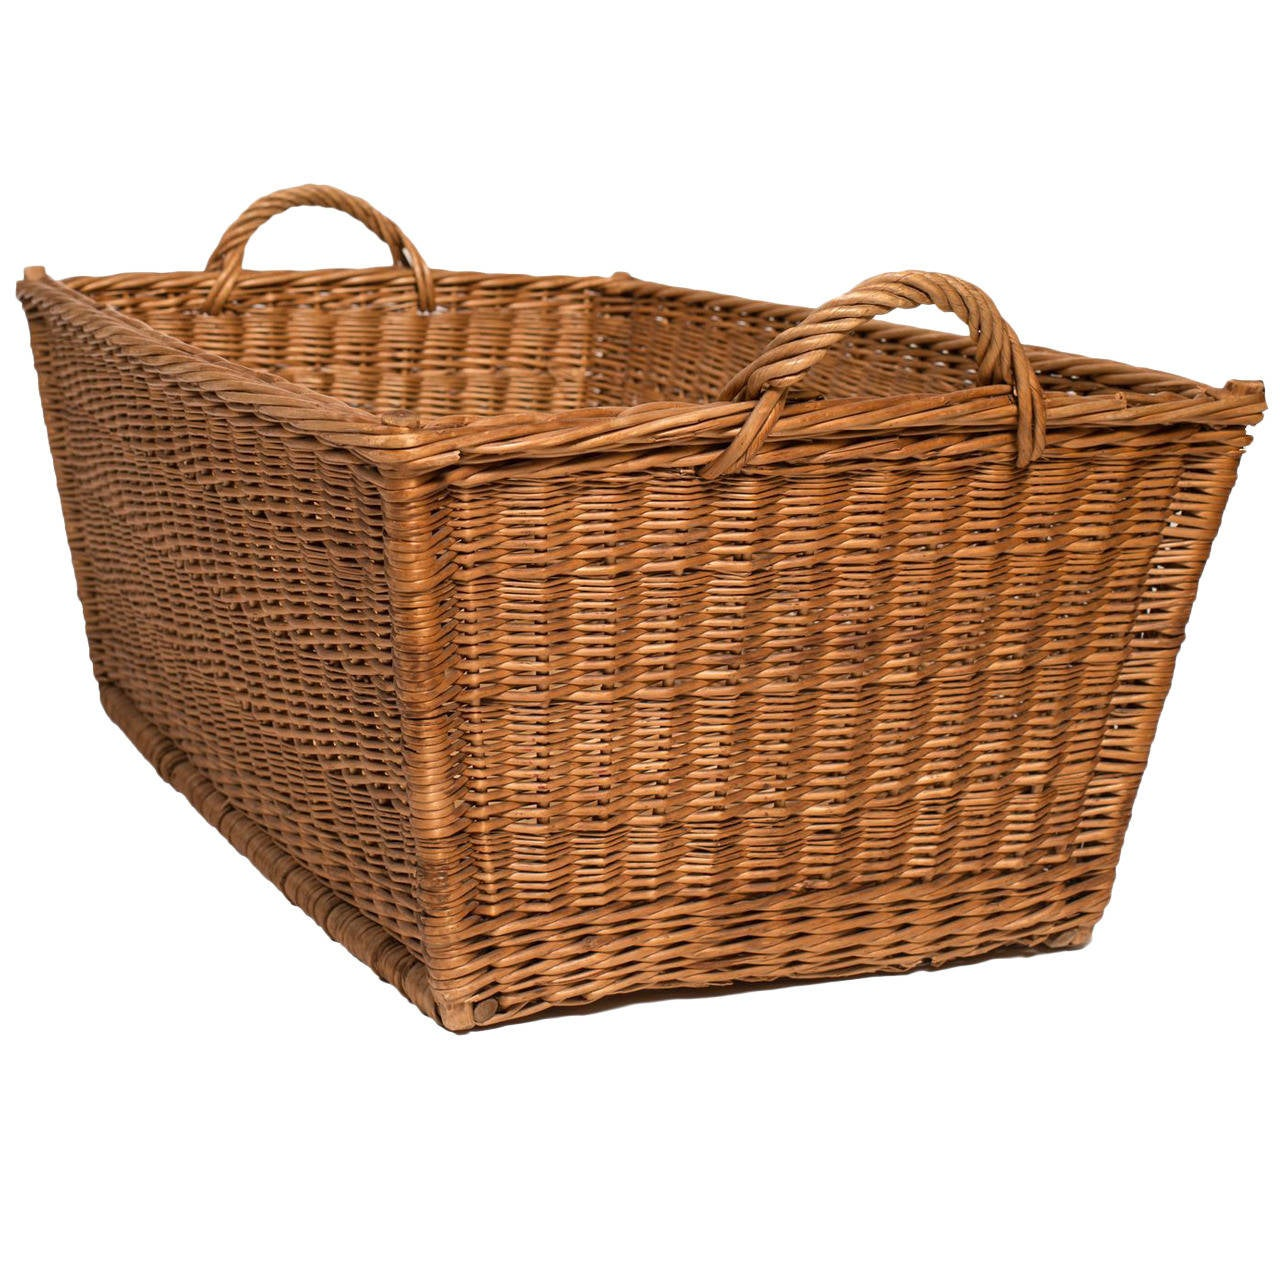 Find a great collection of Gift Baskets at Costco. Enjoy low warehouse prices on name-brand Gift Baskets products.